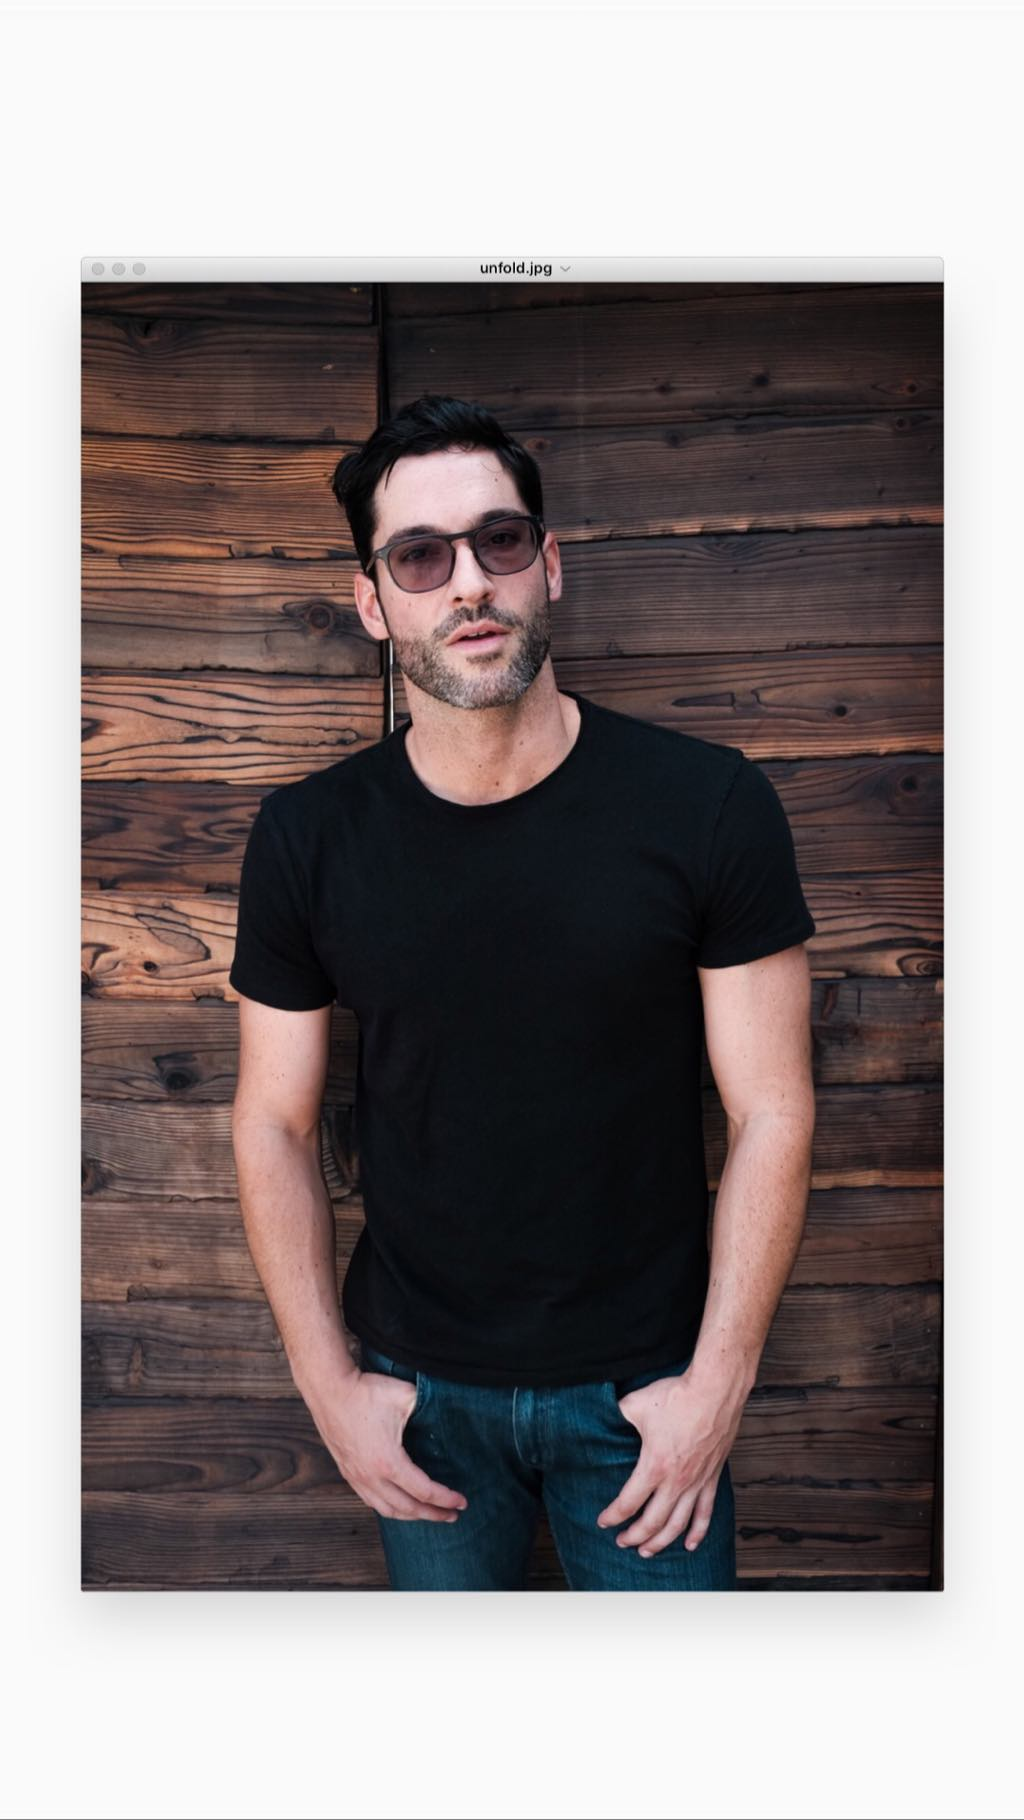 Tom Online New Pictures Of Tom Ellis From The Liproll Podcast | About